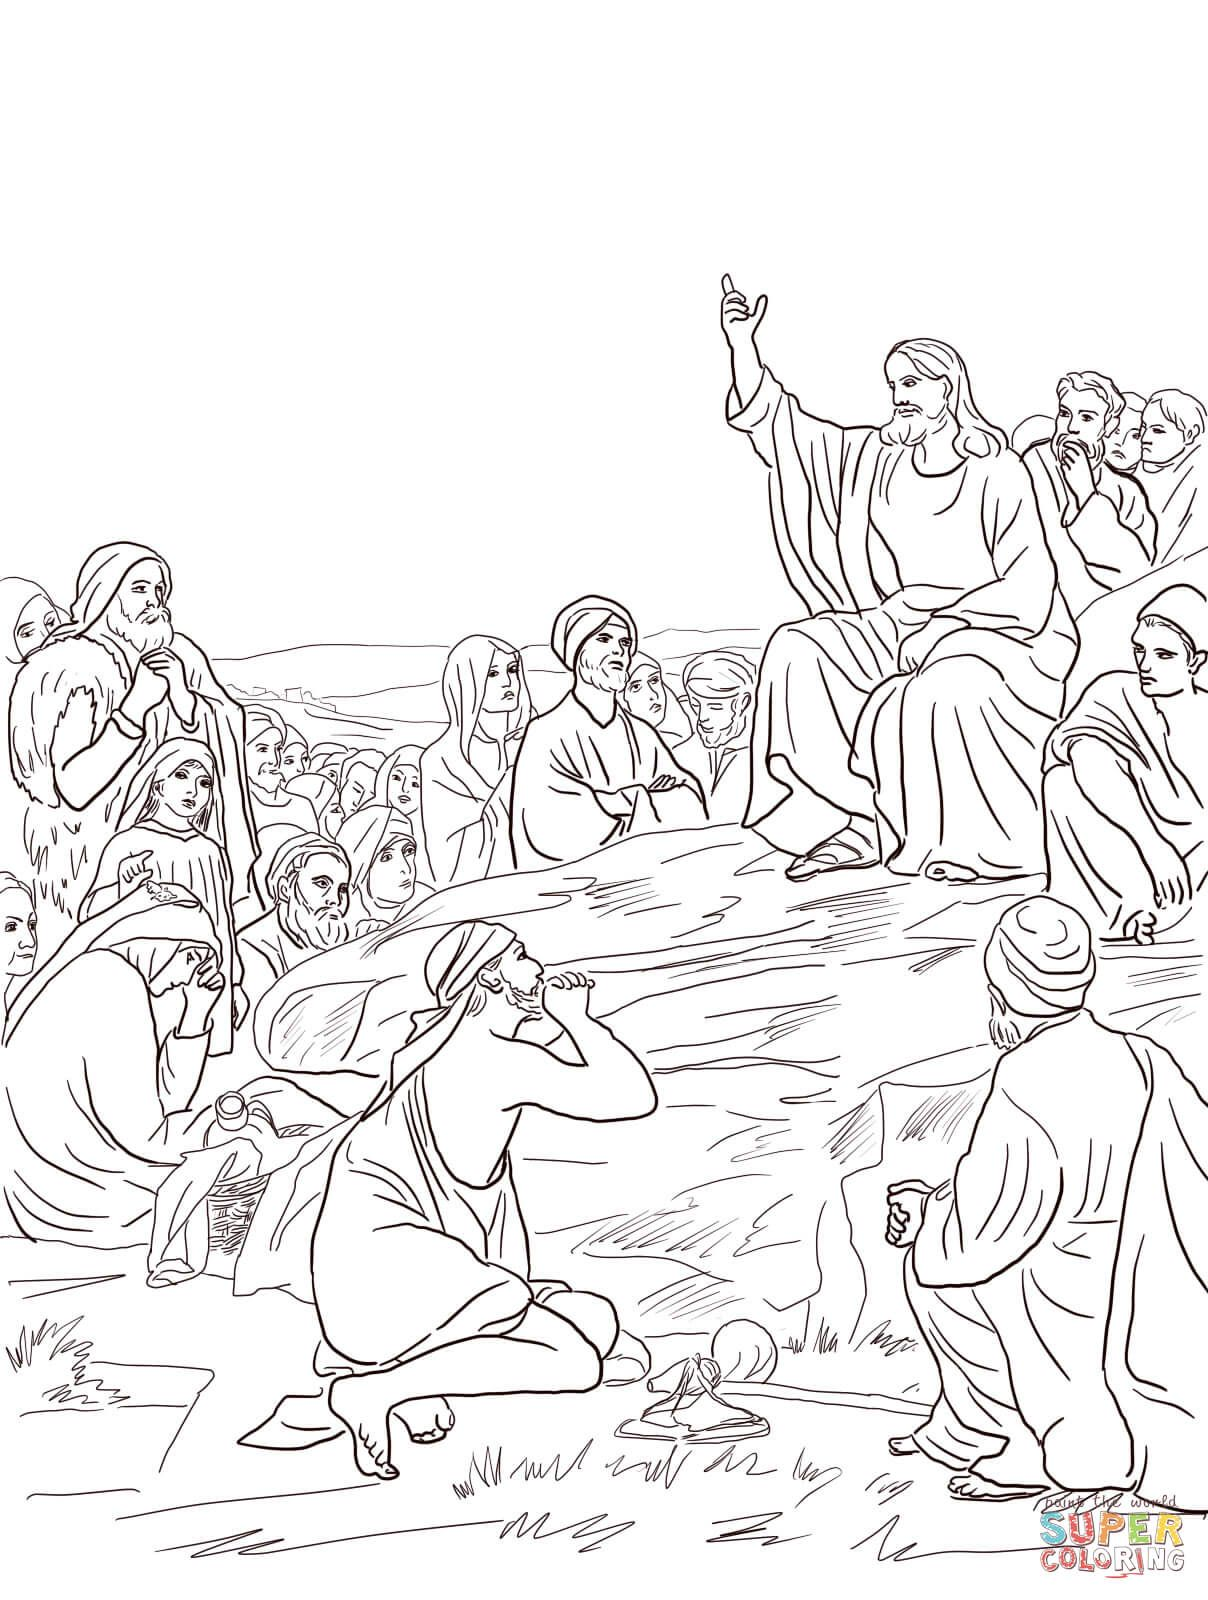 Jesus sermon on the mount super coloring